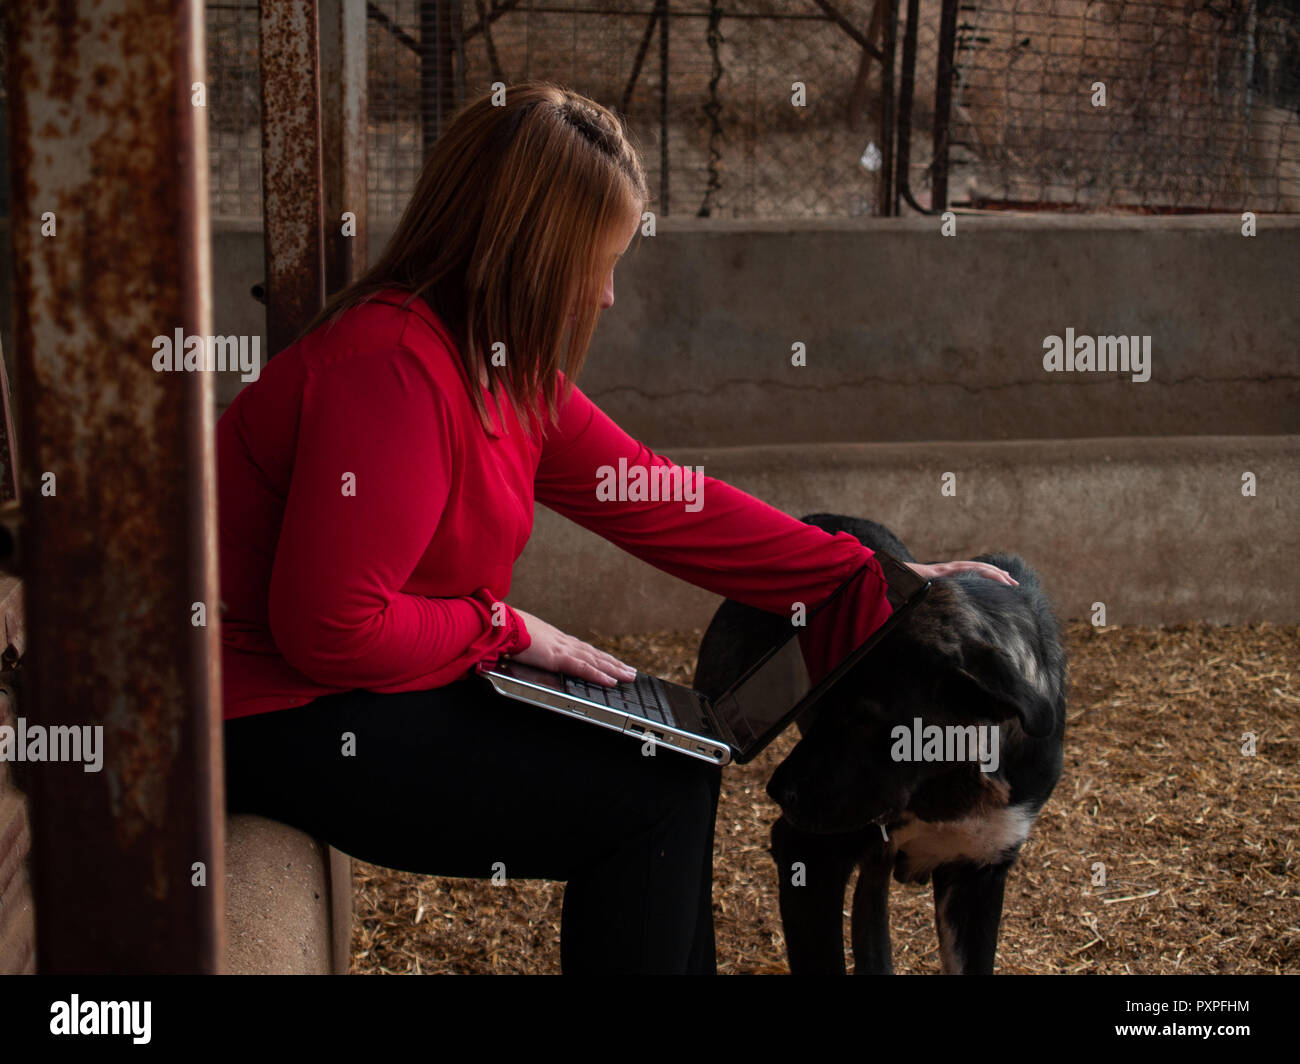 An entrepreneur young woman working outdoor on a farm with a laptop stroking a mastiff dog - Stock Image